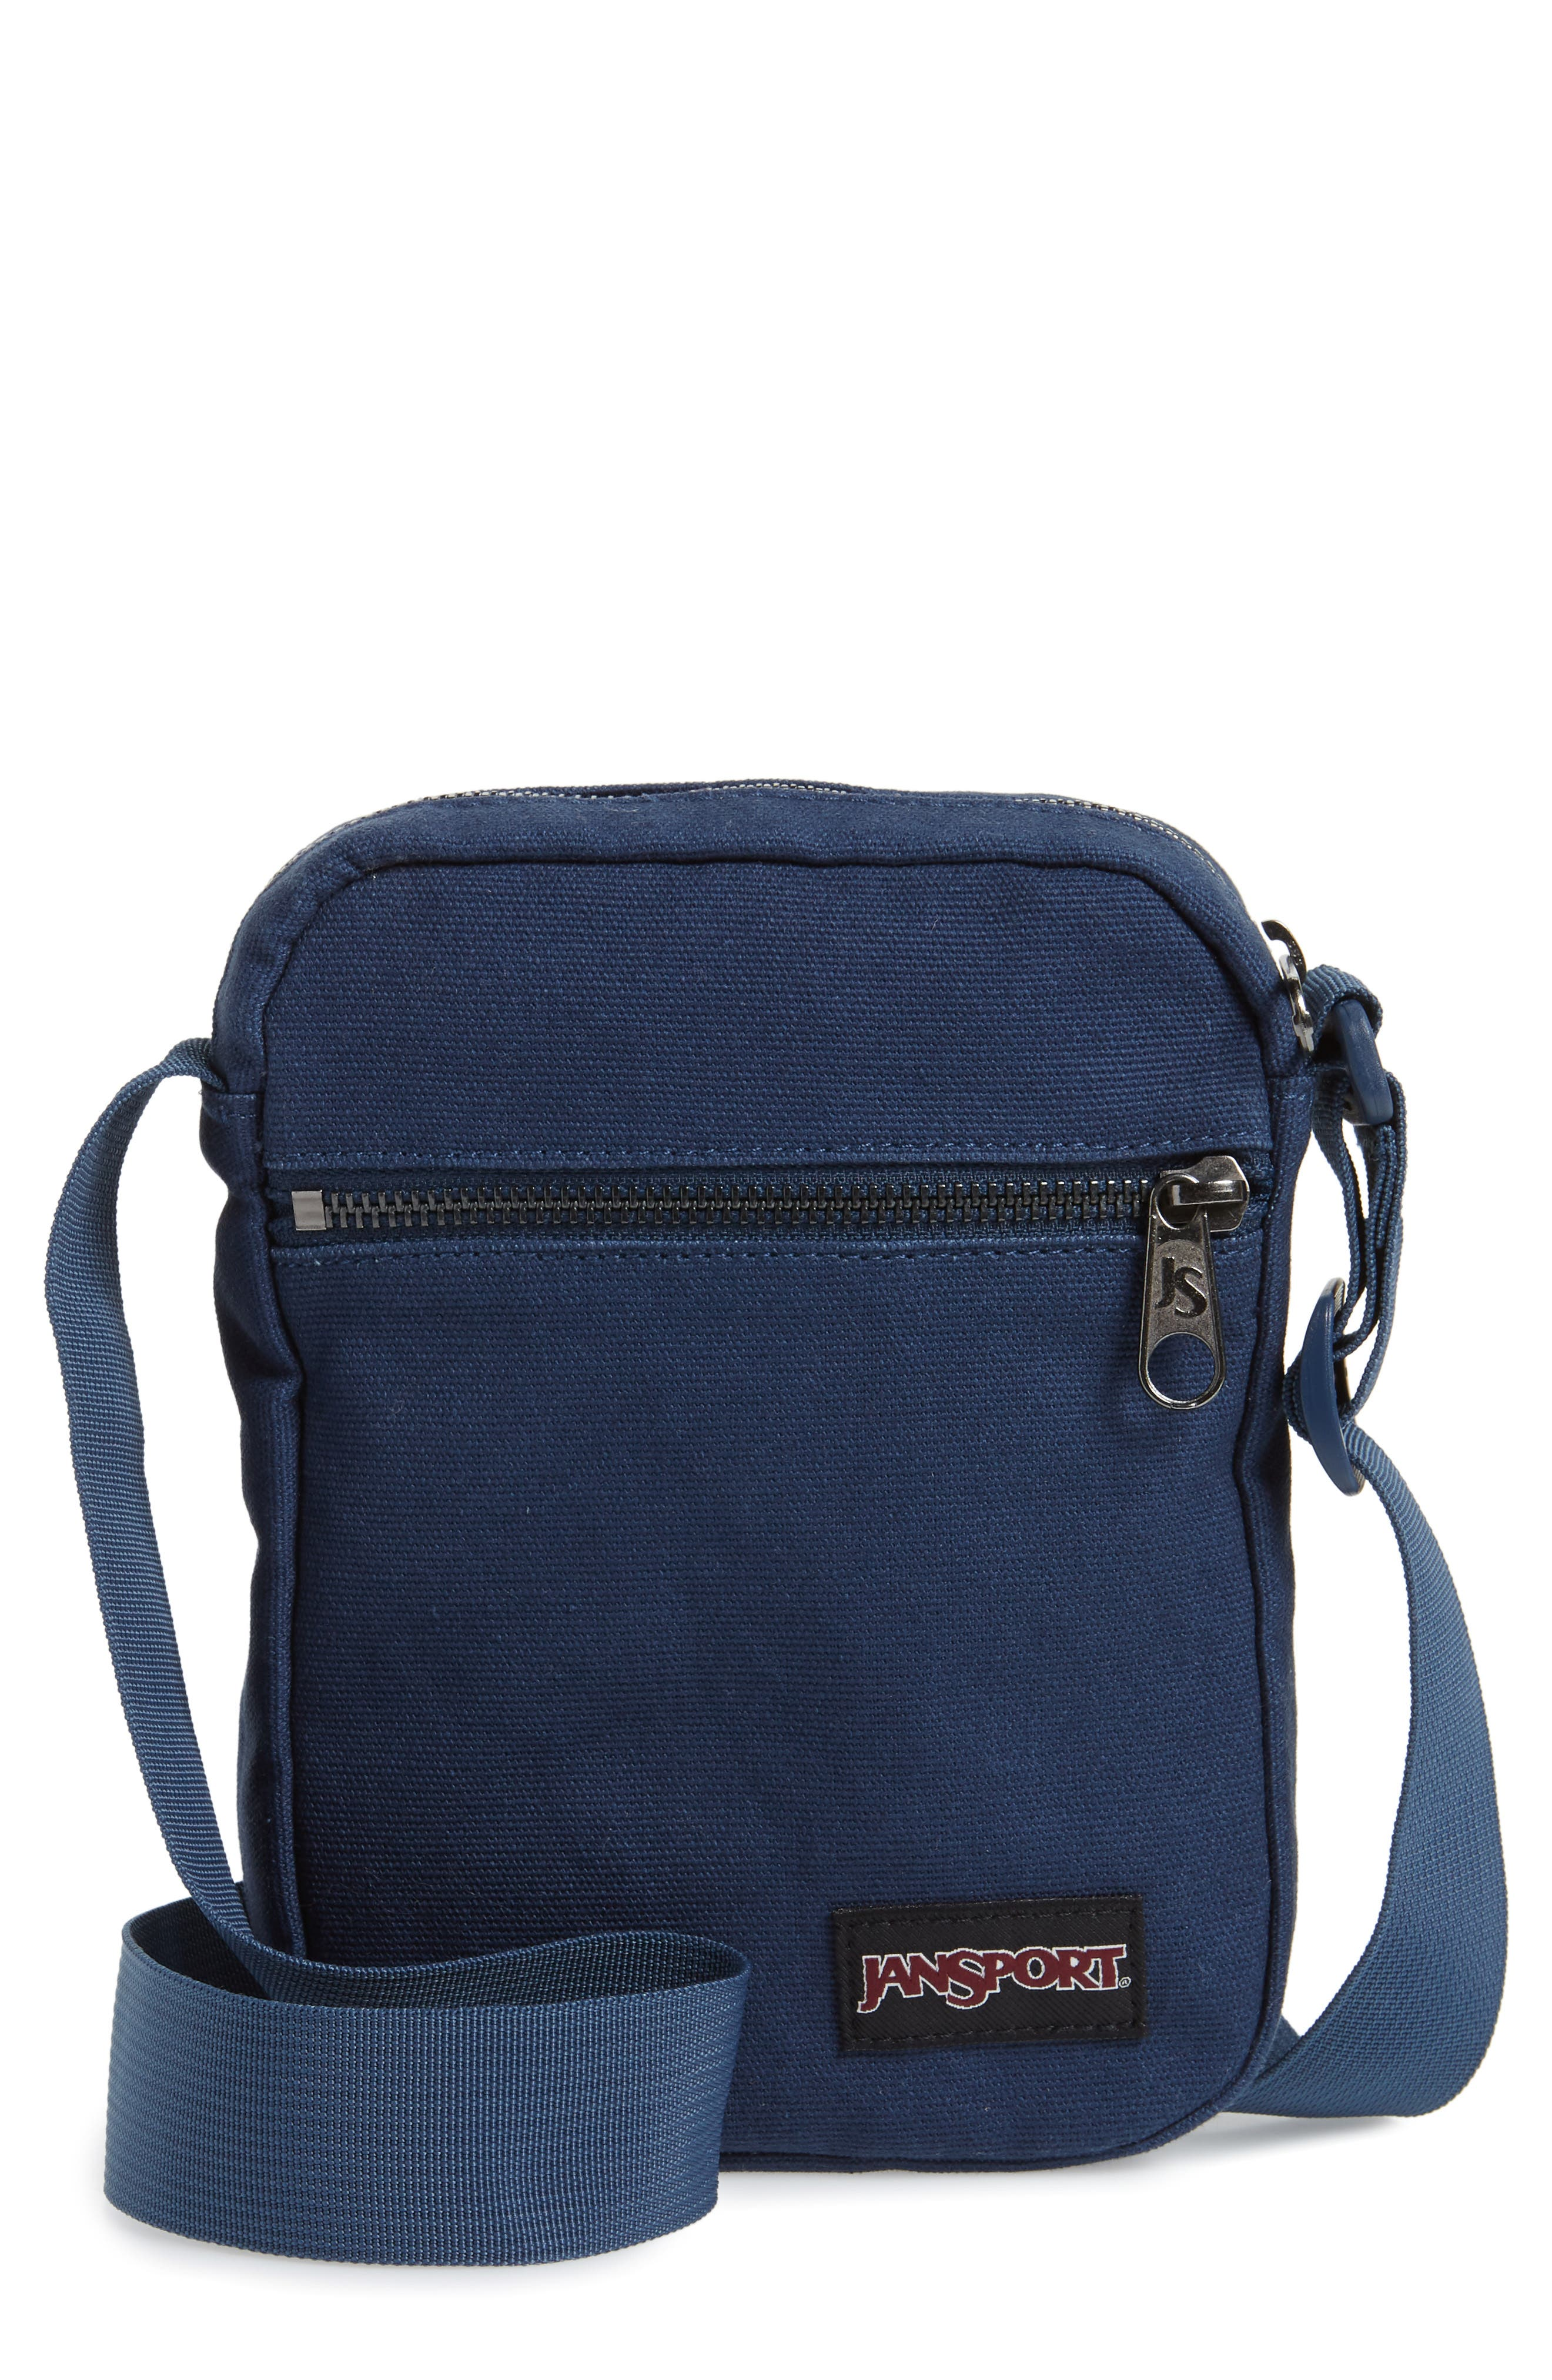 JANSPORT CROSSBODY FX BAG - BLUE